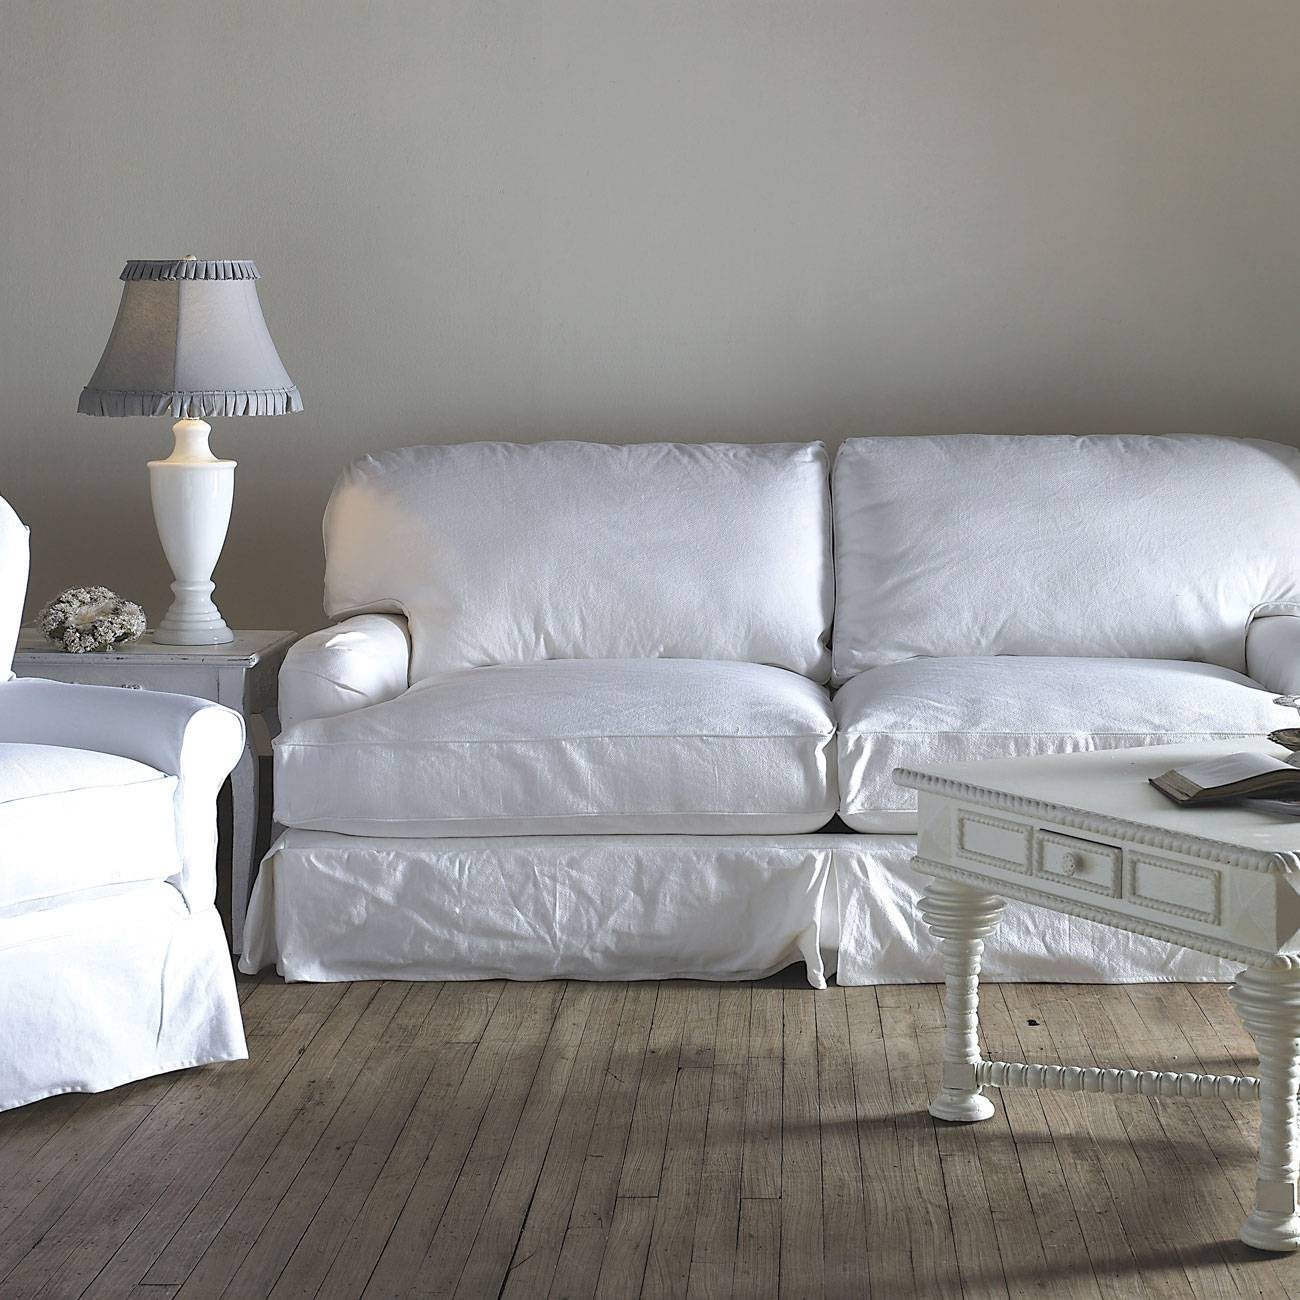 25 Cozy Shabby Chic Furniture Ideas For Your Home | Top Home Designs in Shabby Chic Sofa (Image 1 of 30)